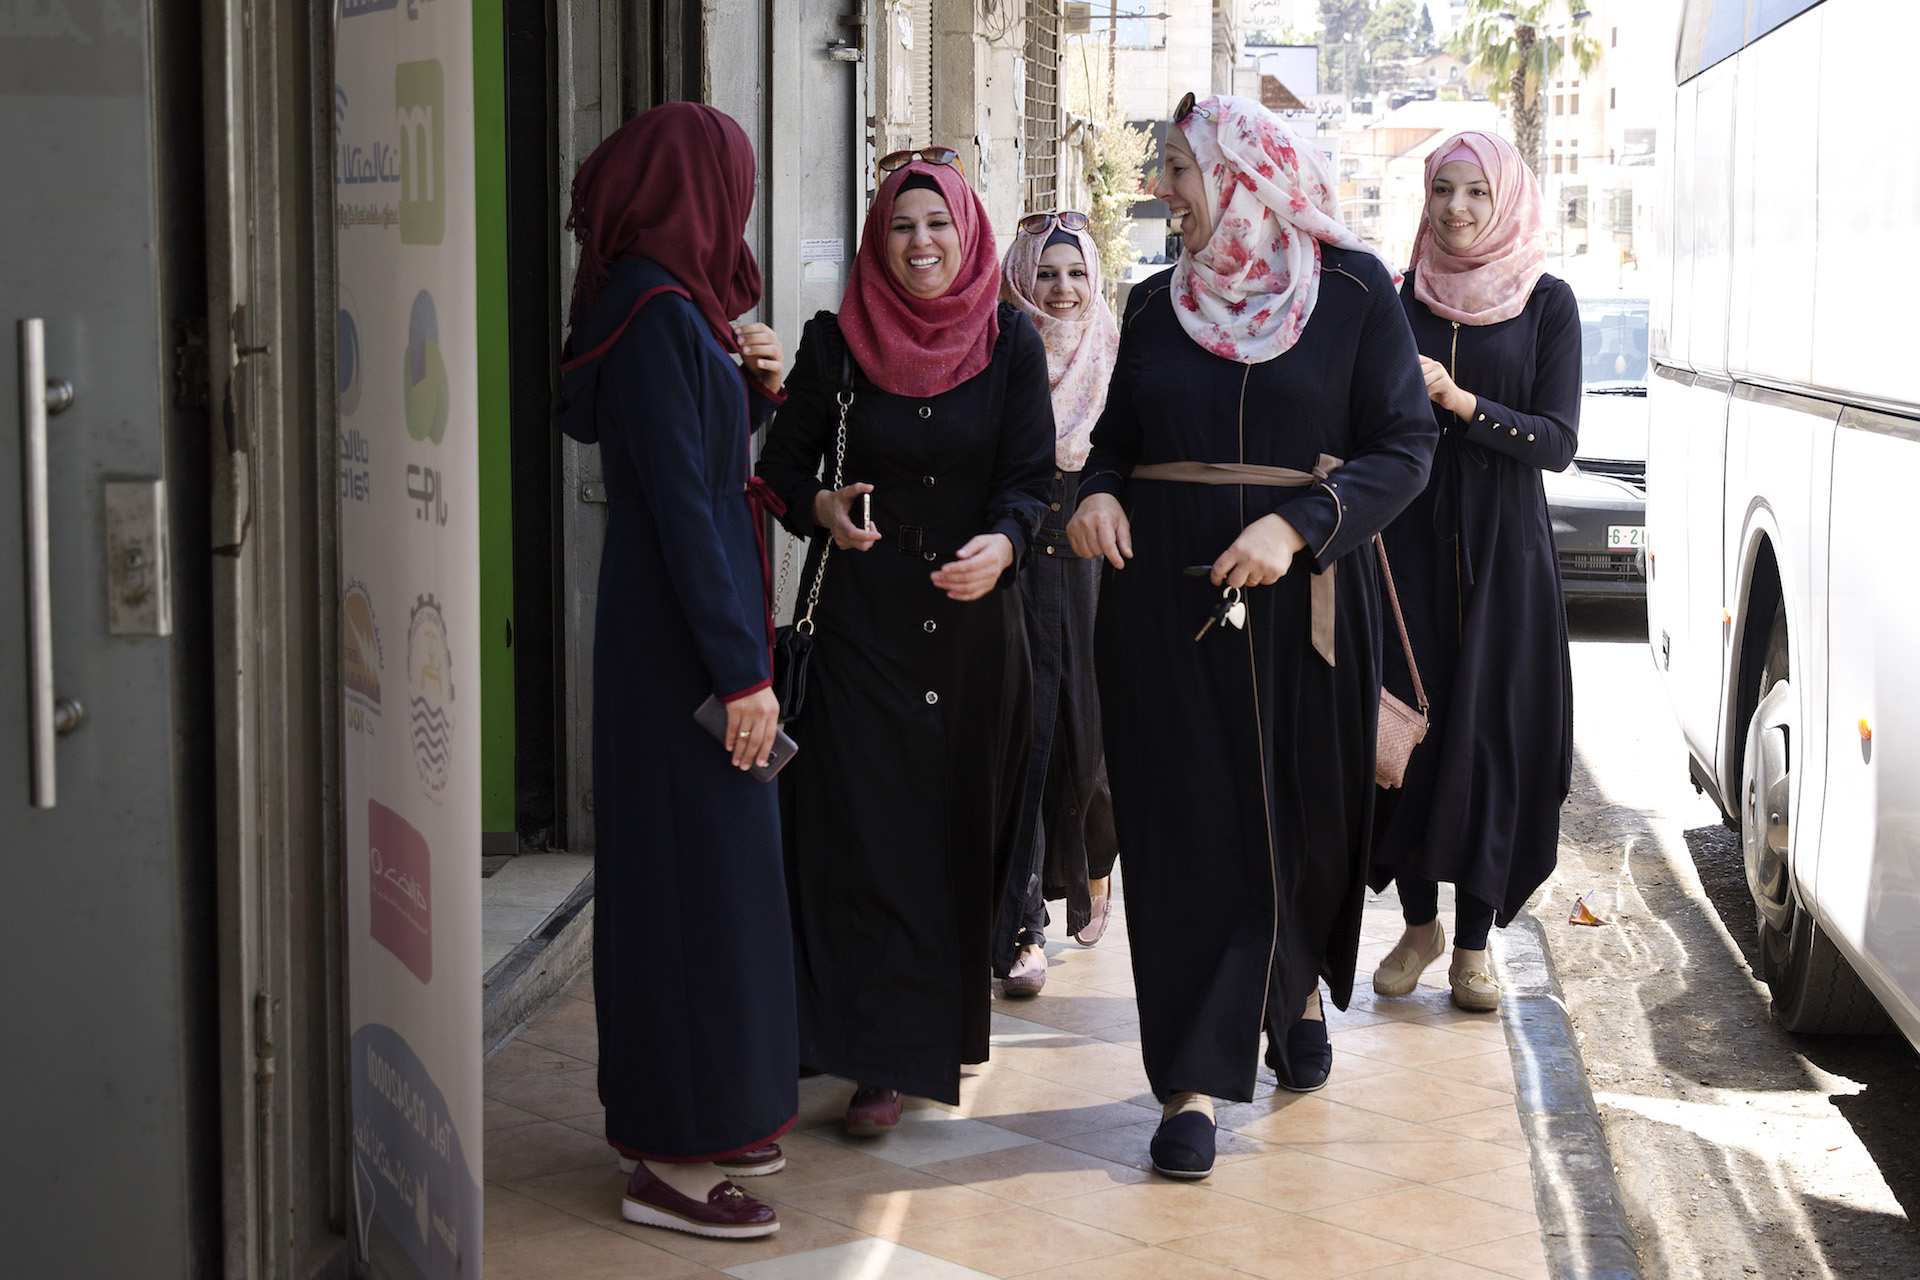 May 31st 2016 Ramallah, West Bank A group of women laugh as they walk on the streets of Ramallah. 05/31/2016 Photo by Christina Thornell